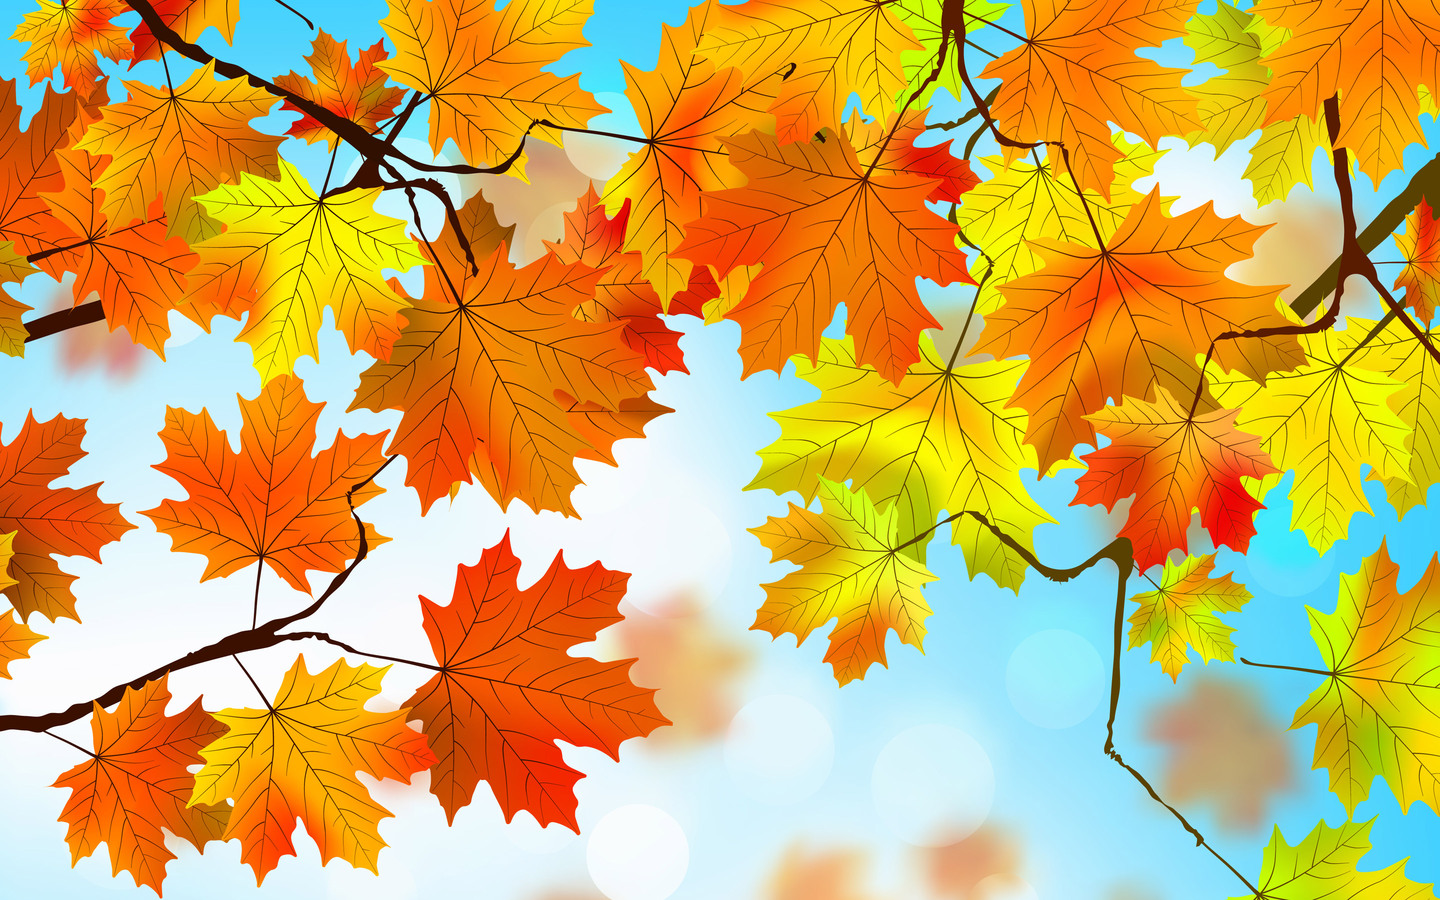 1440x900 Autumn Leaves Hd 1440x900 Resolution Hd 4k